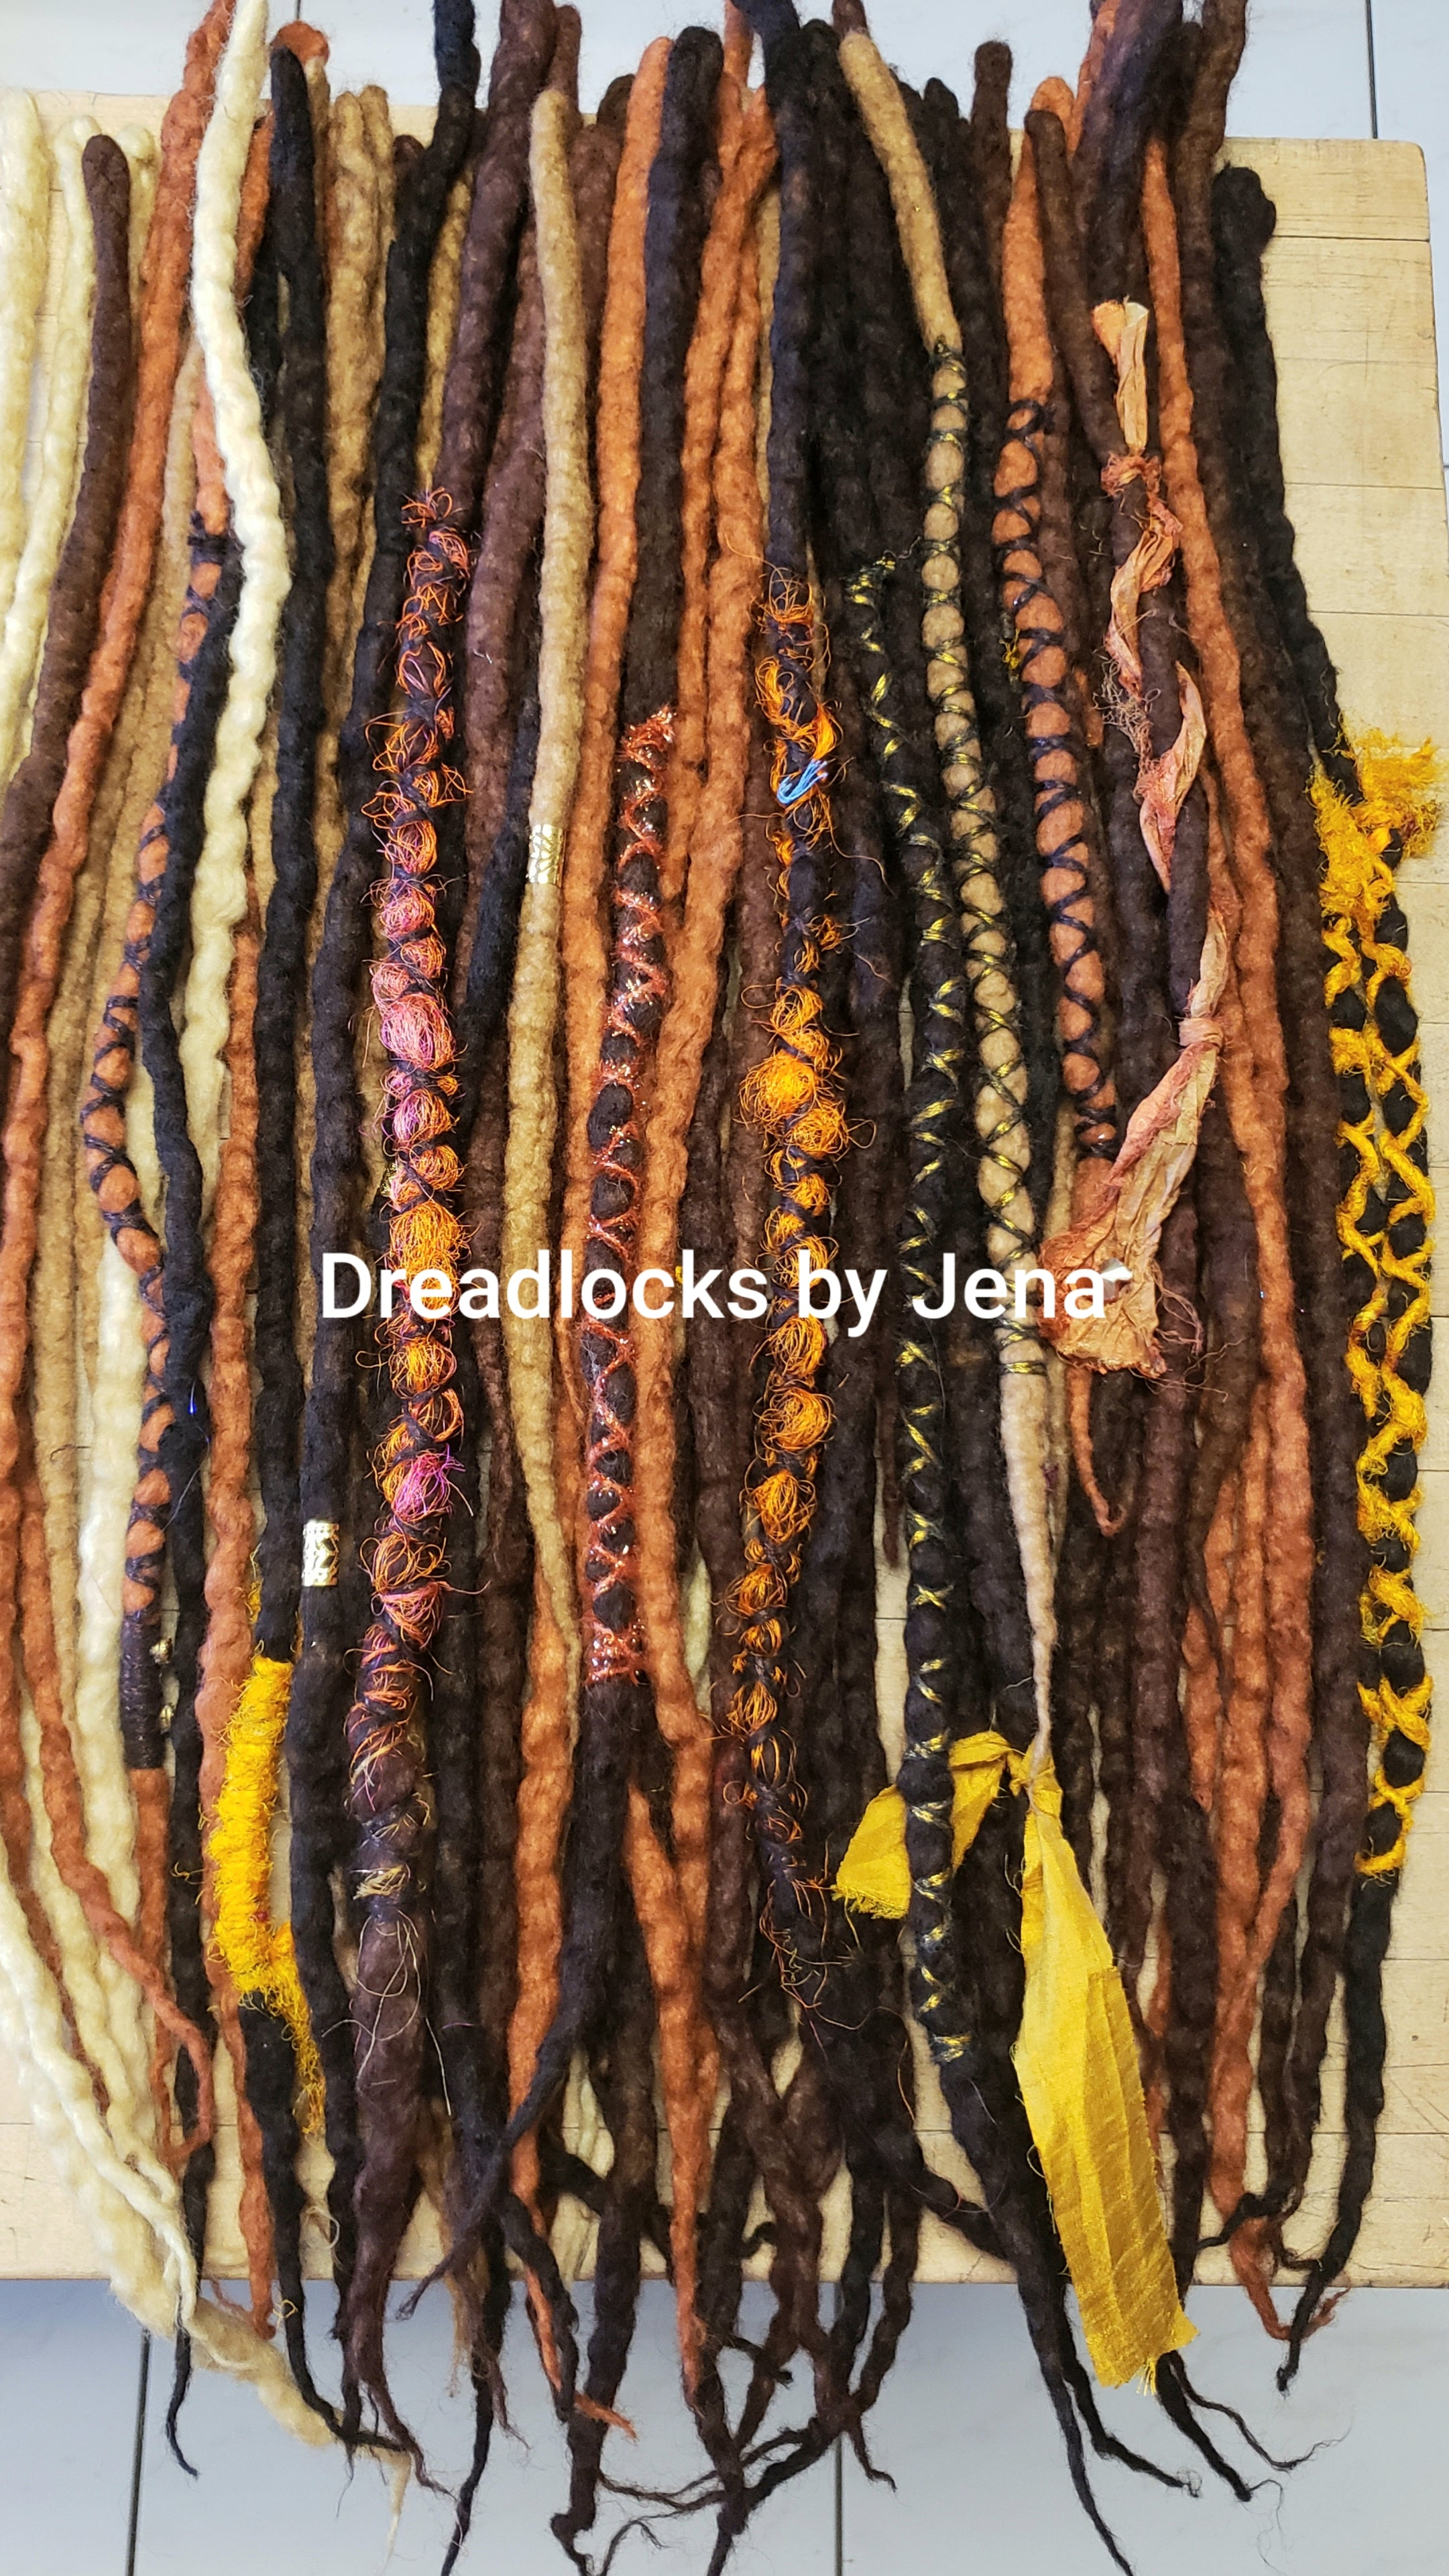 Copy of Single Ended Dreadlock set of 40